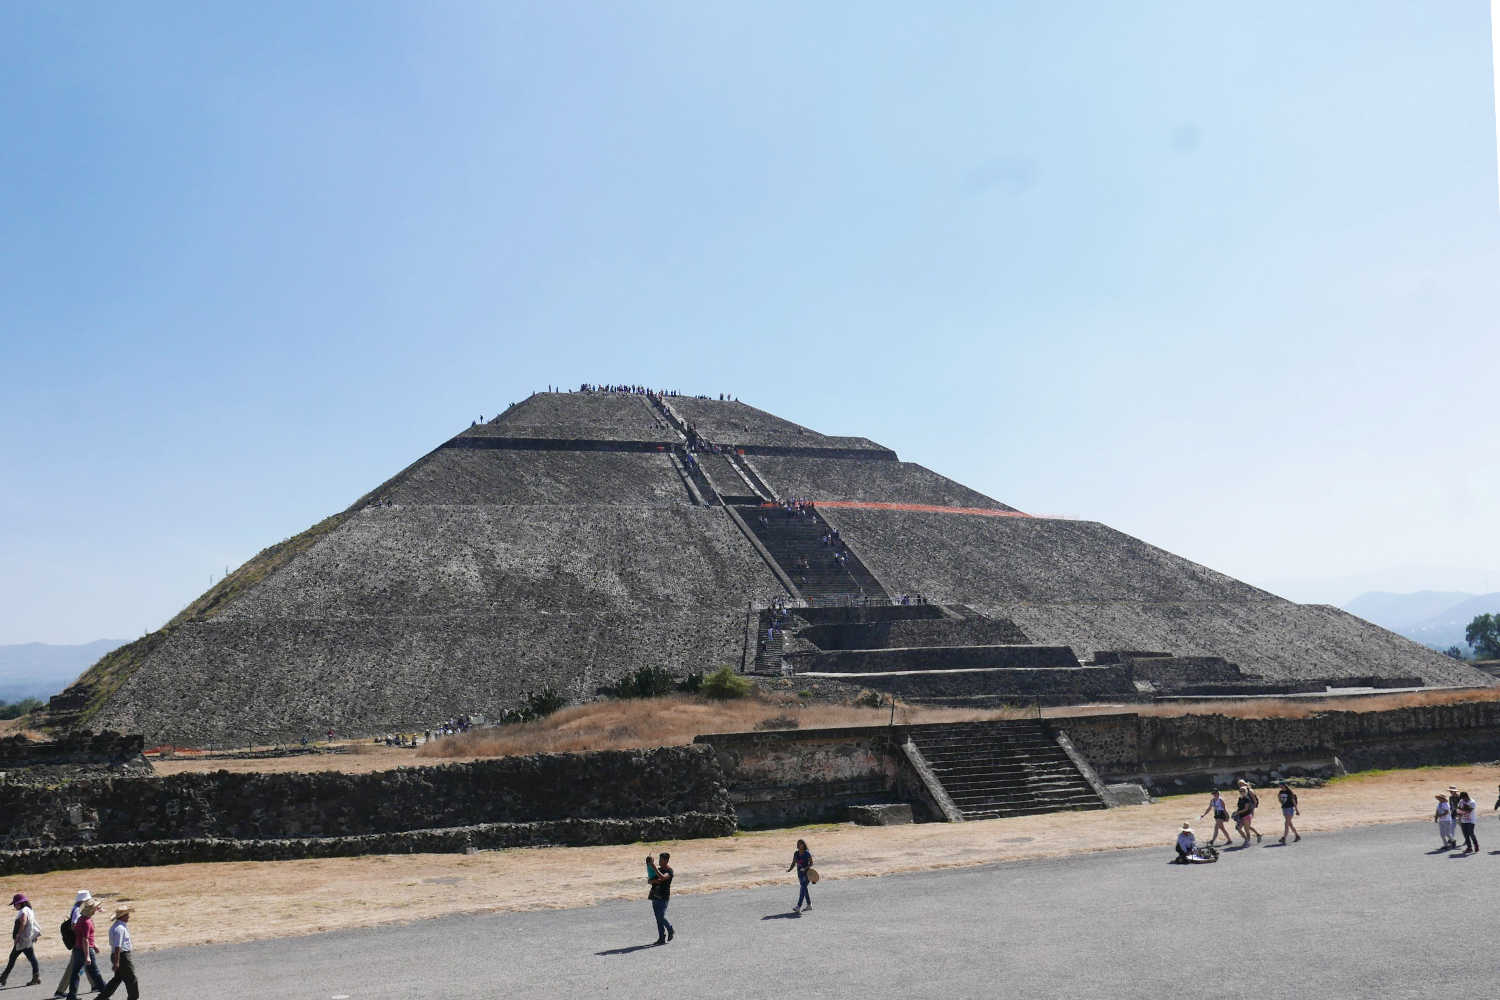 Overview of Pyramid of the Sun in Teotihuacan from Avenue of the Dead